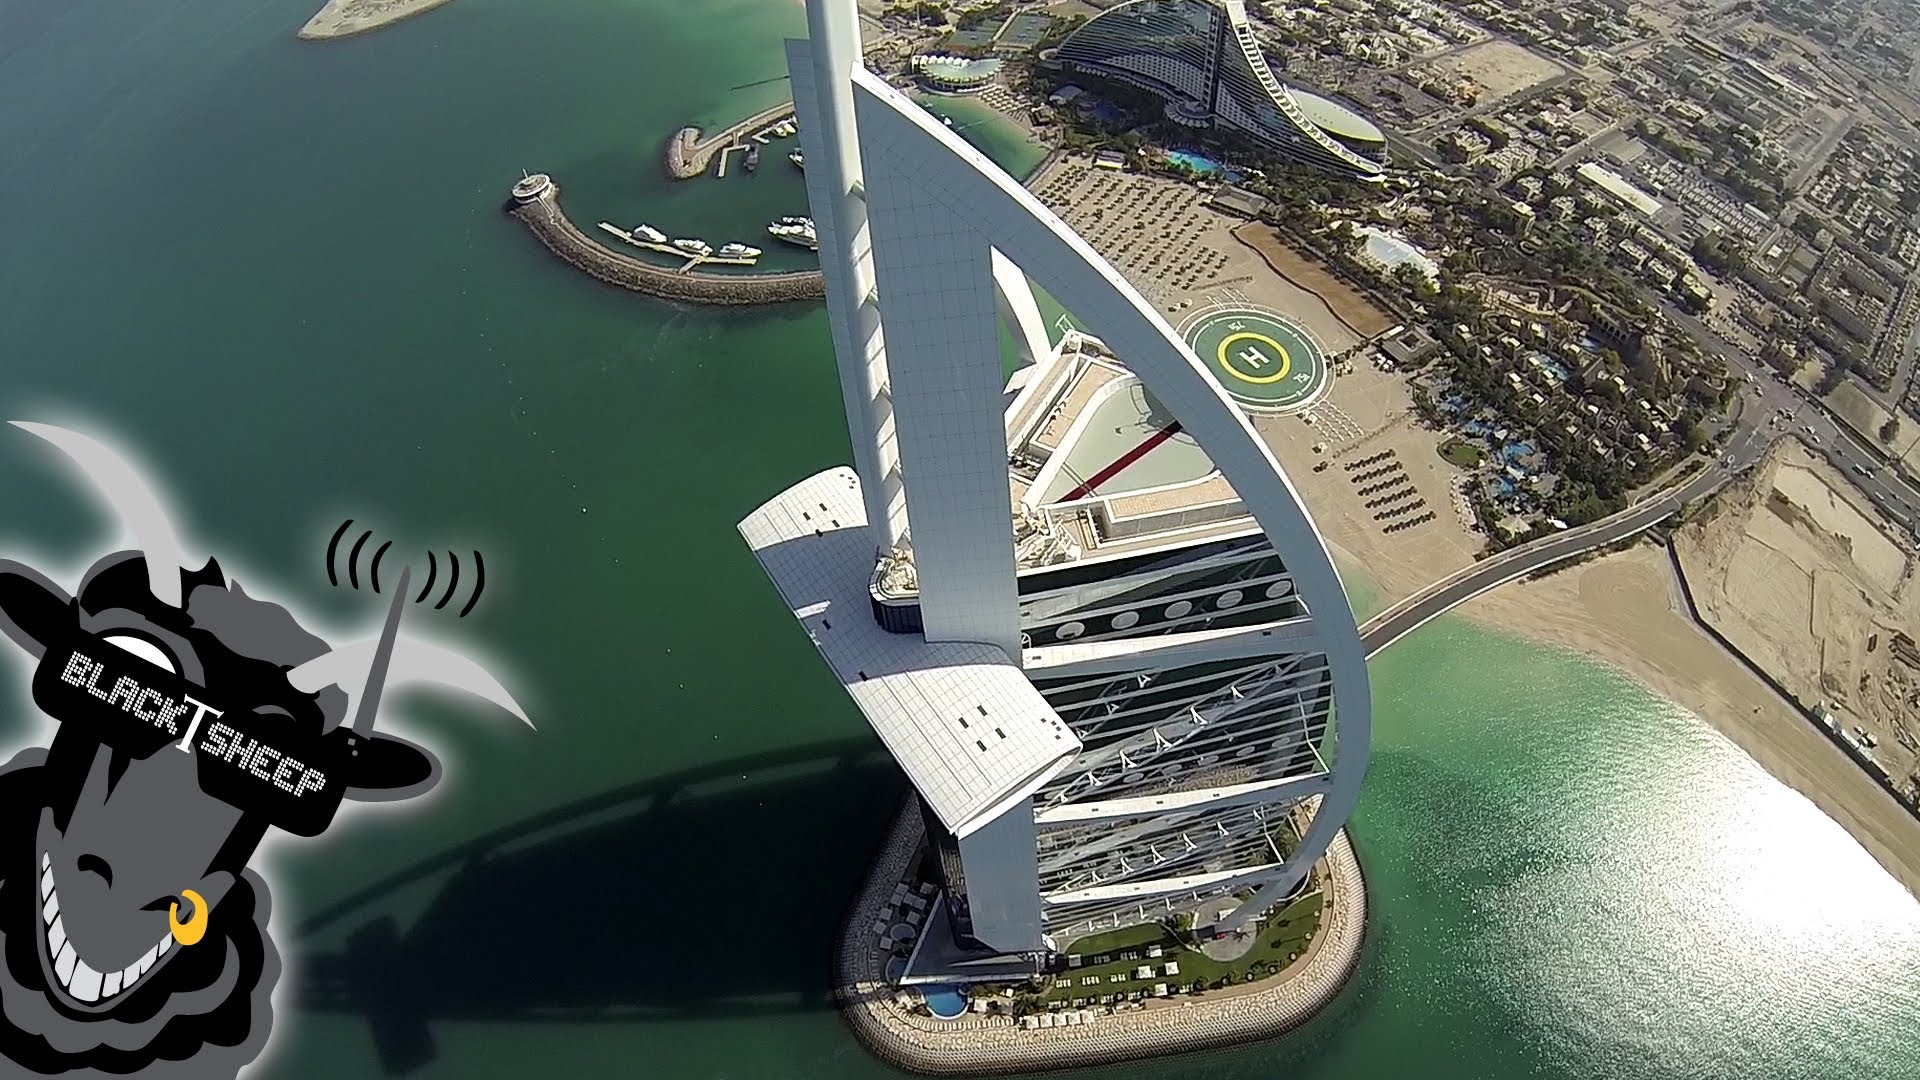 delivery drone with Drone View Dubai on Airbridgecargos First 747 8f Delivered also Mercedes Benzs New Concept Car Is The Drone Delivery Van Of The Future 2016 09 07 as well F 16 Cd additionally Drone View Dubai as well Flirtey Delivers Drugs By Drone From Ship To Shore In New Jersey.